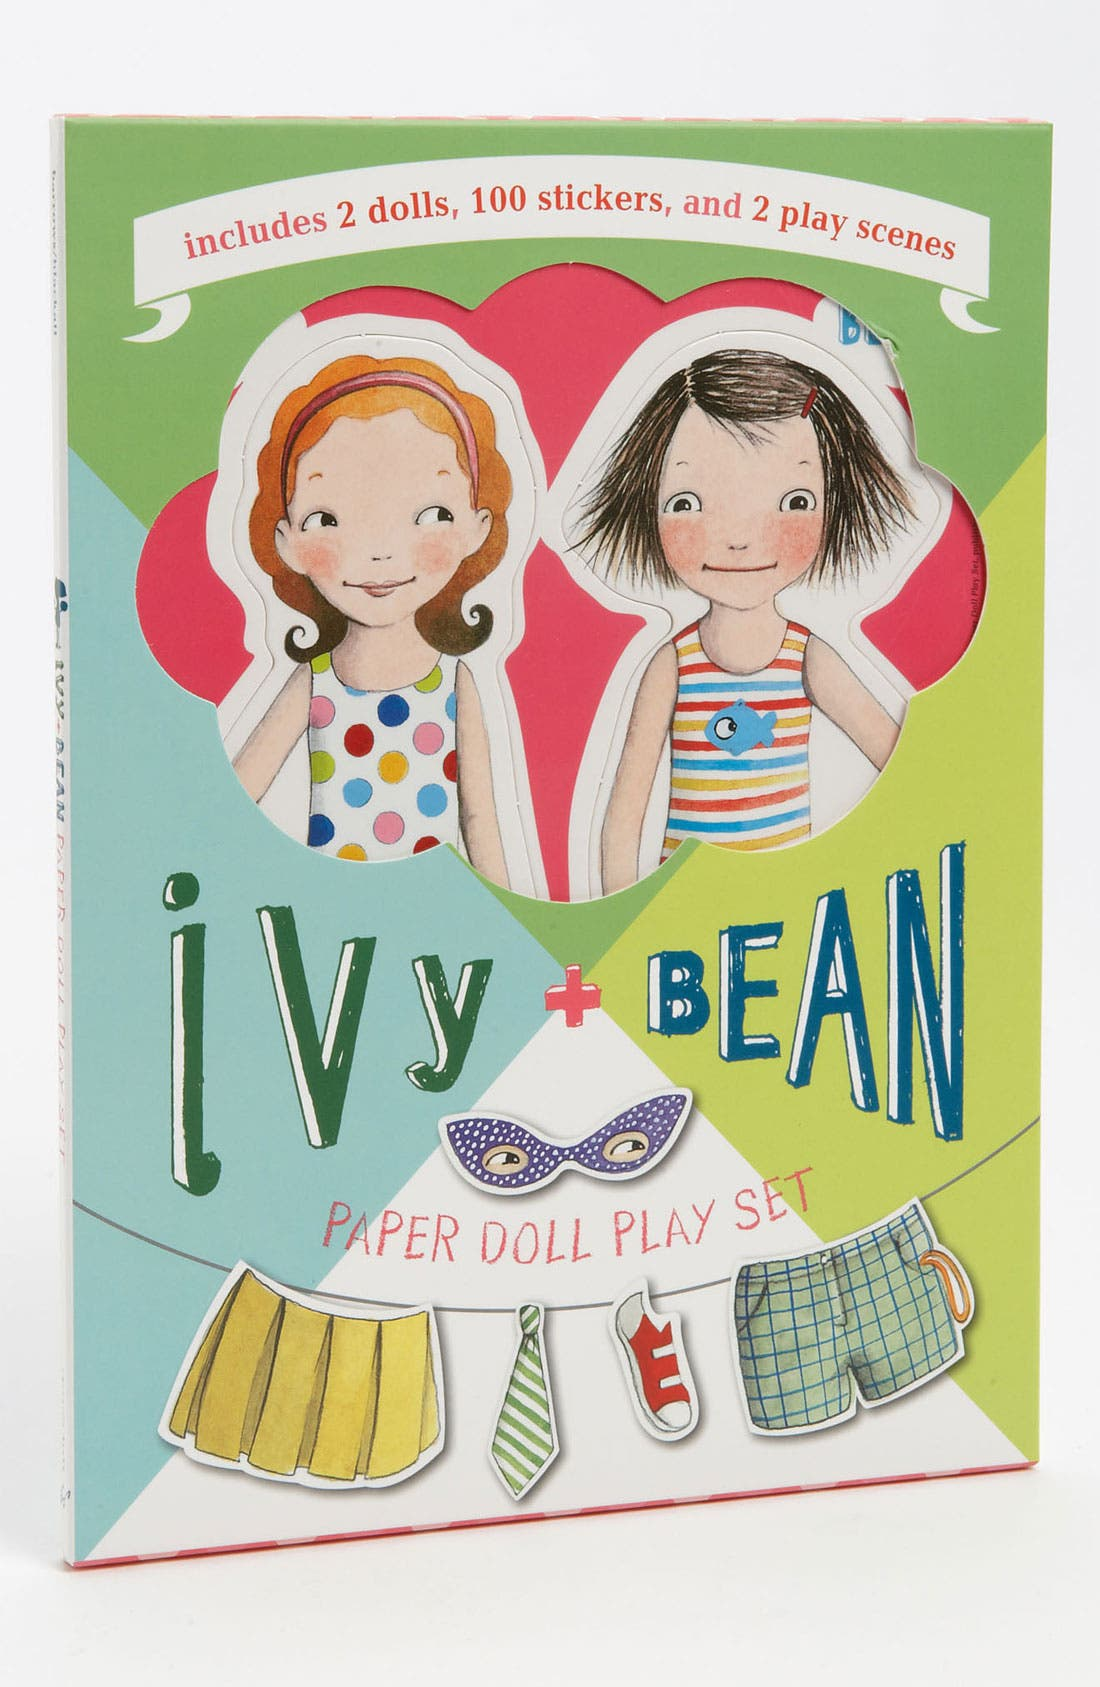 Alternate Image 1 Selected - Annie Barrows & Sophie Blackall 'Ivy + Bean' Paper Doll Set